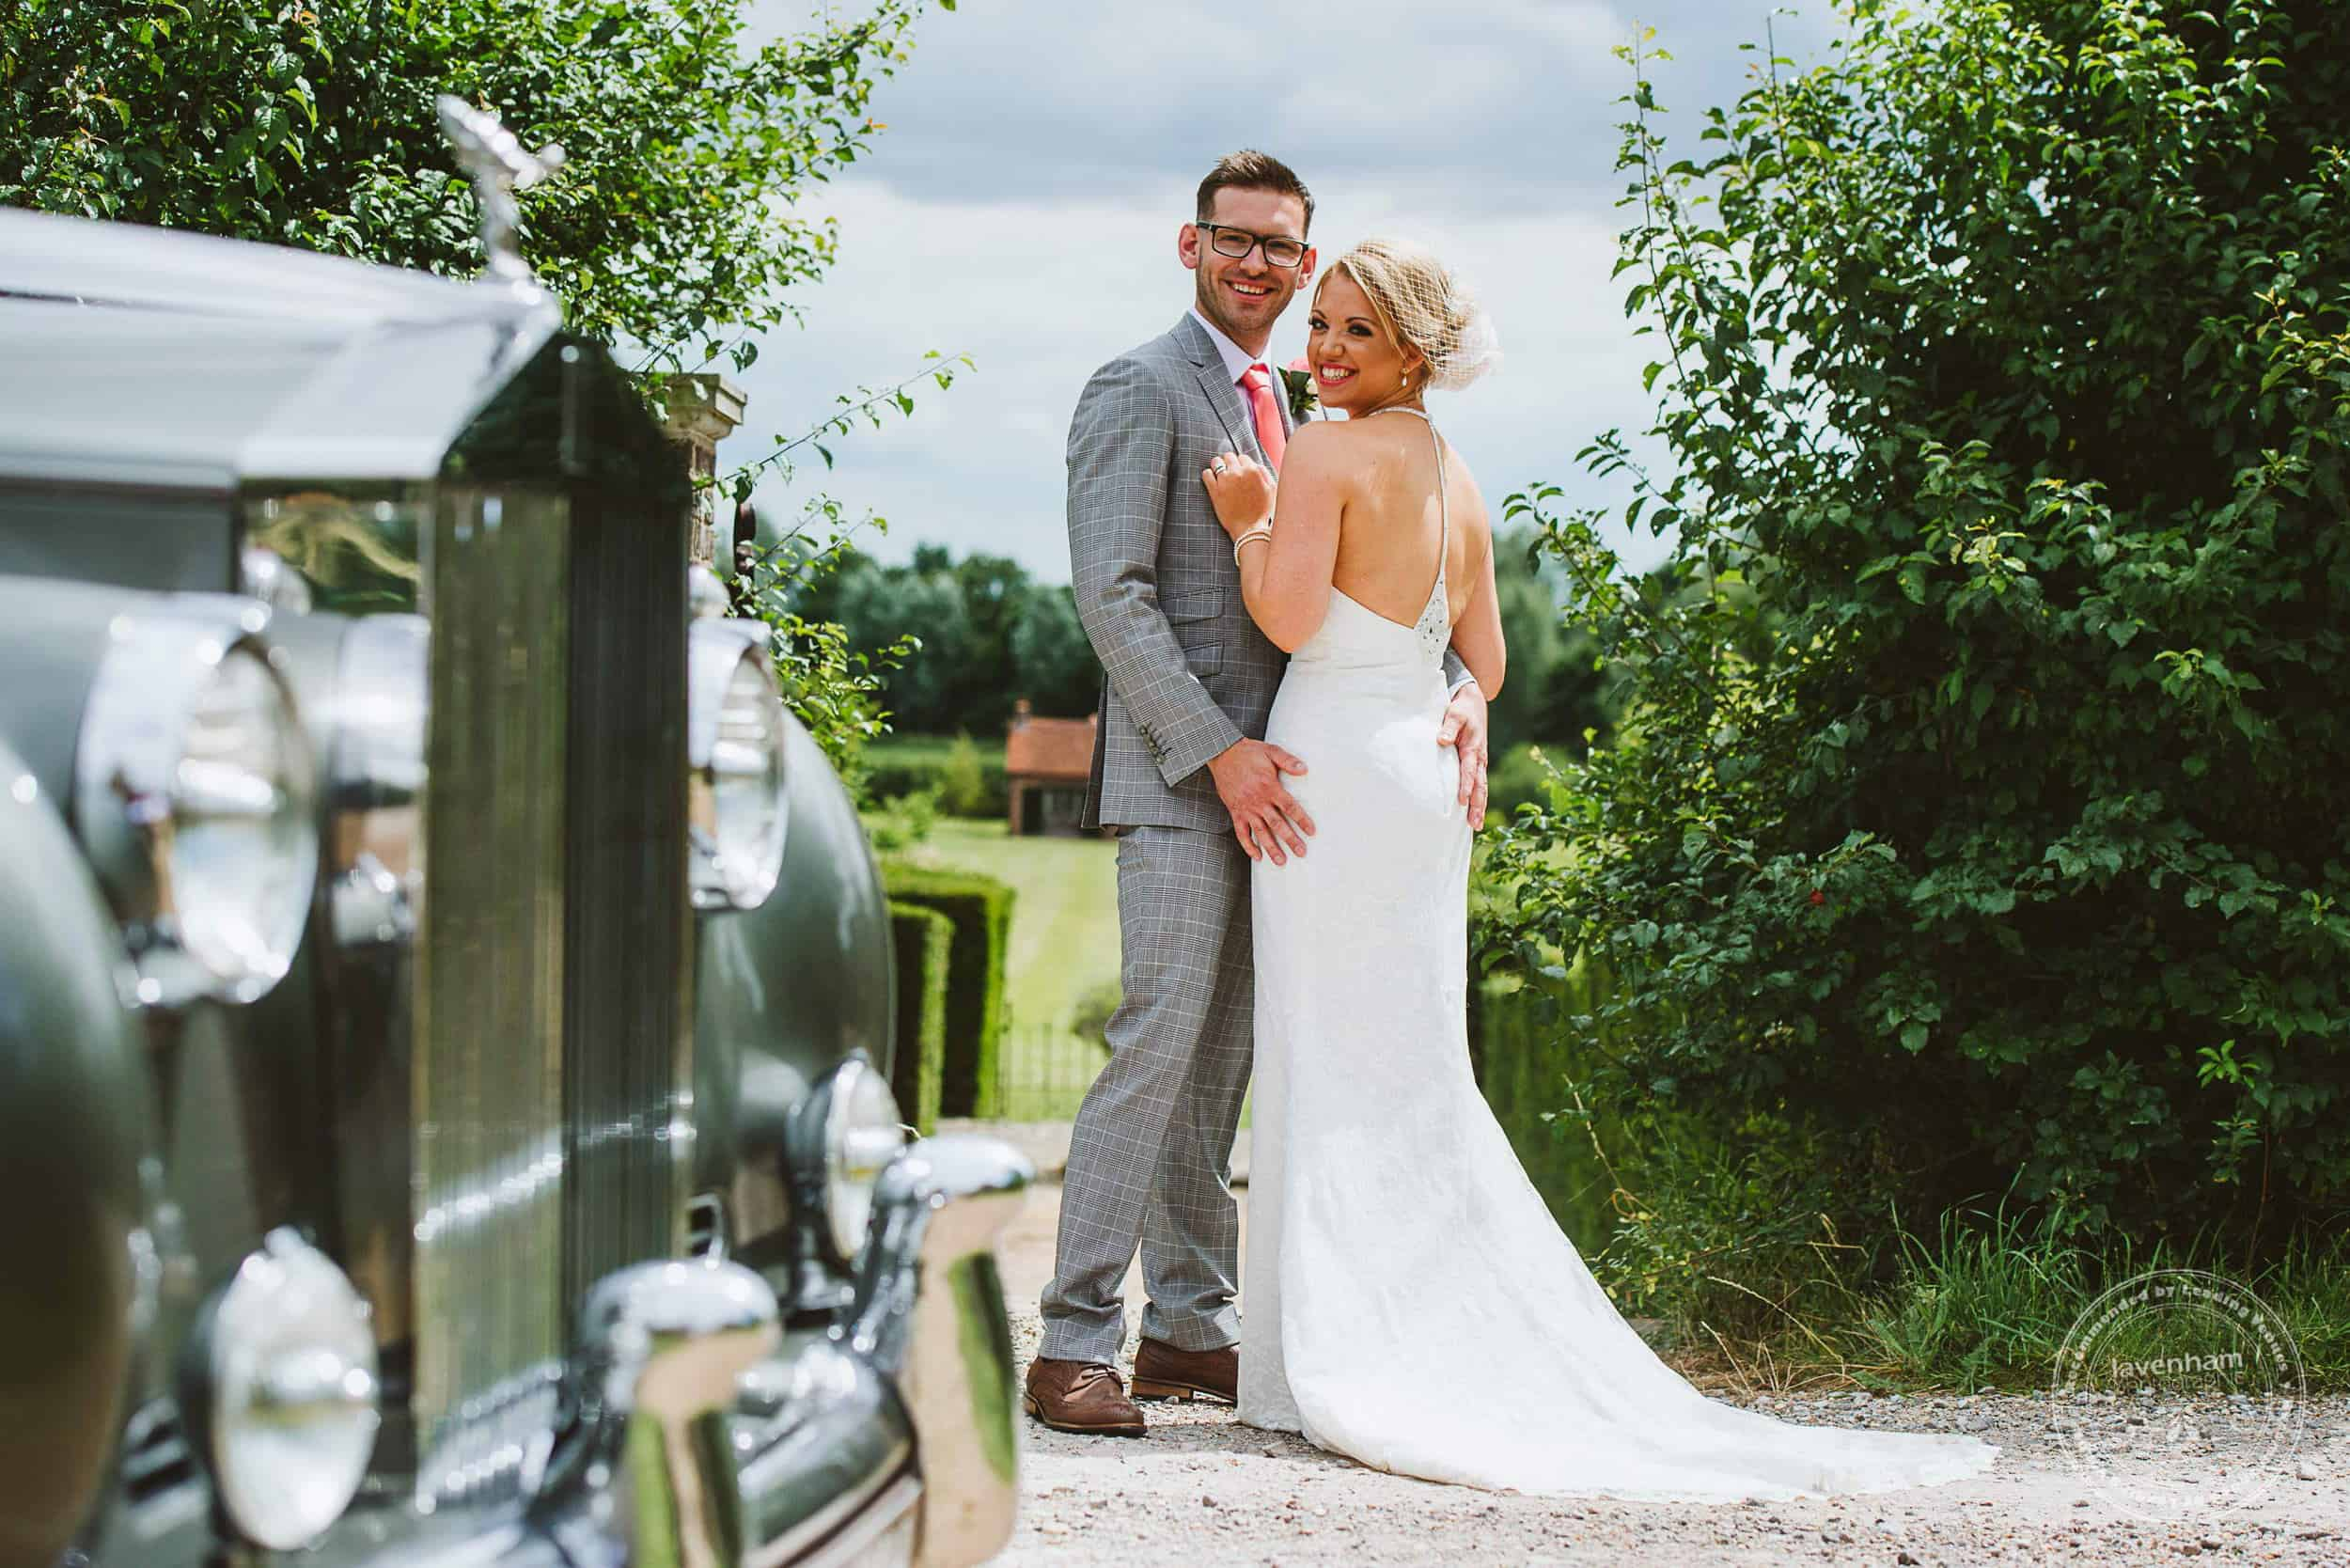 140717 Layer Marney Wedding Photography by Lavenham Photographic 060